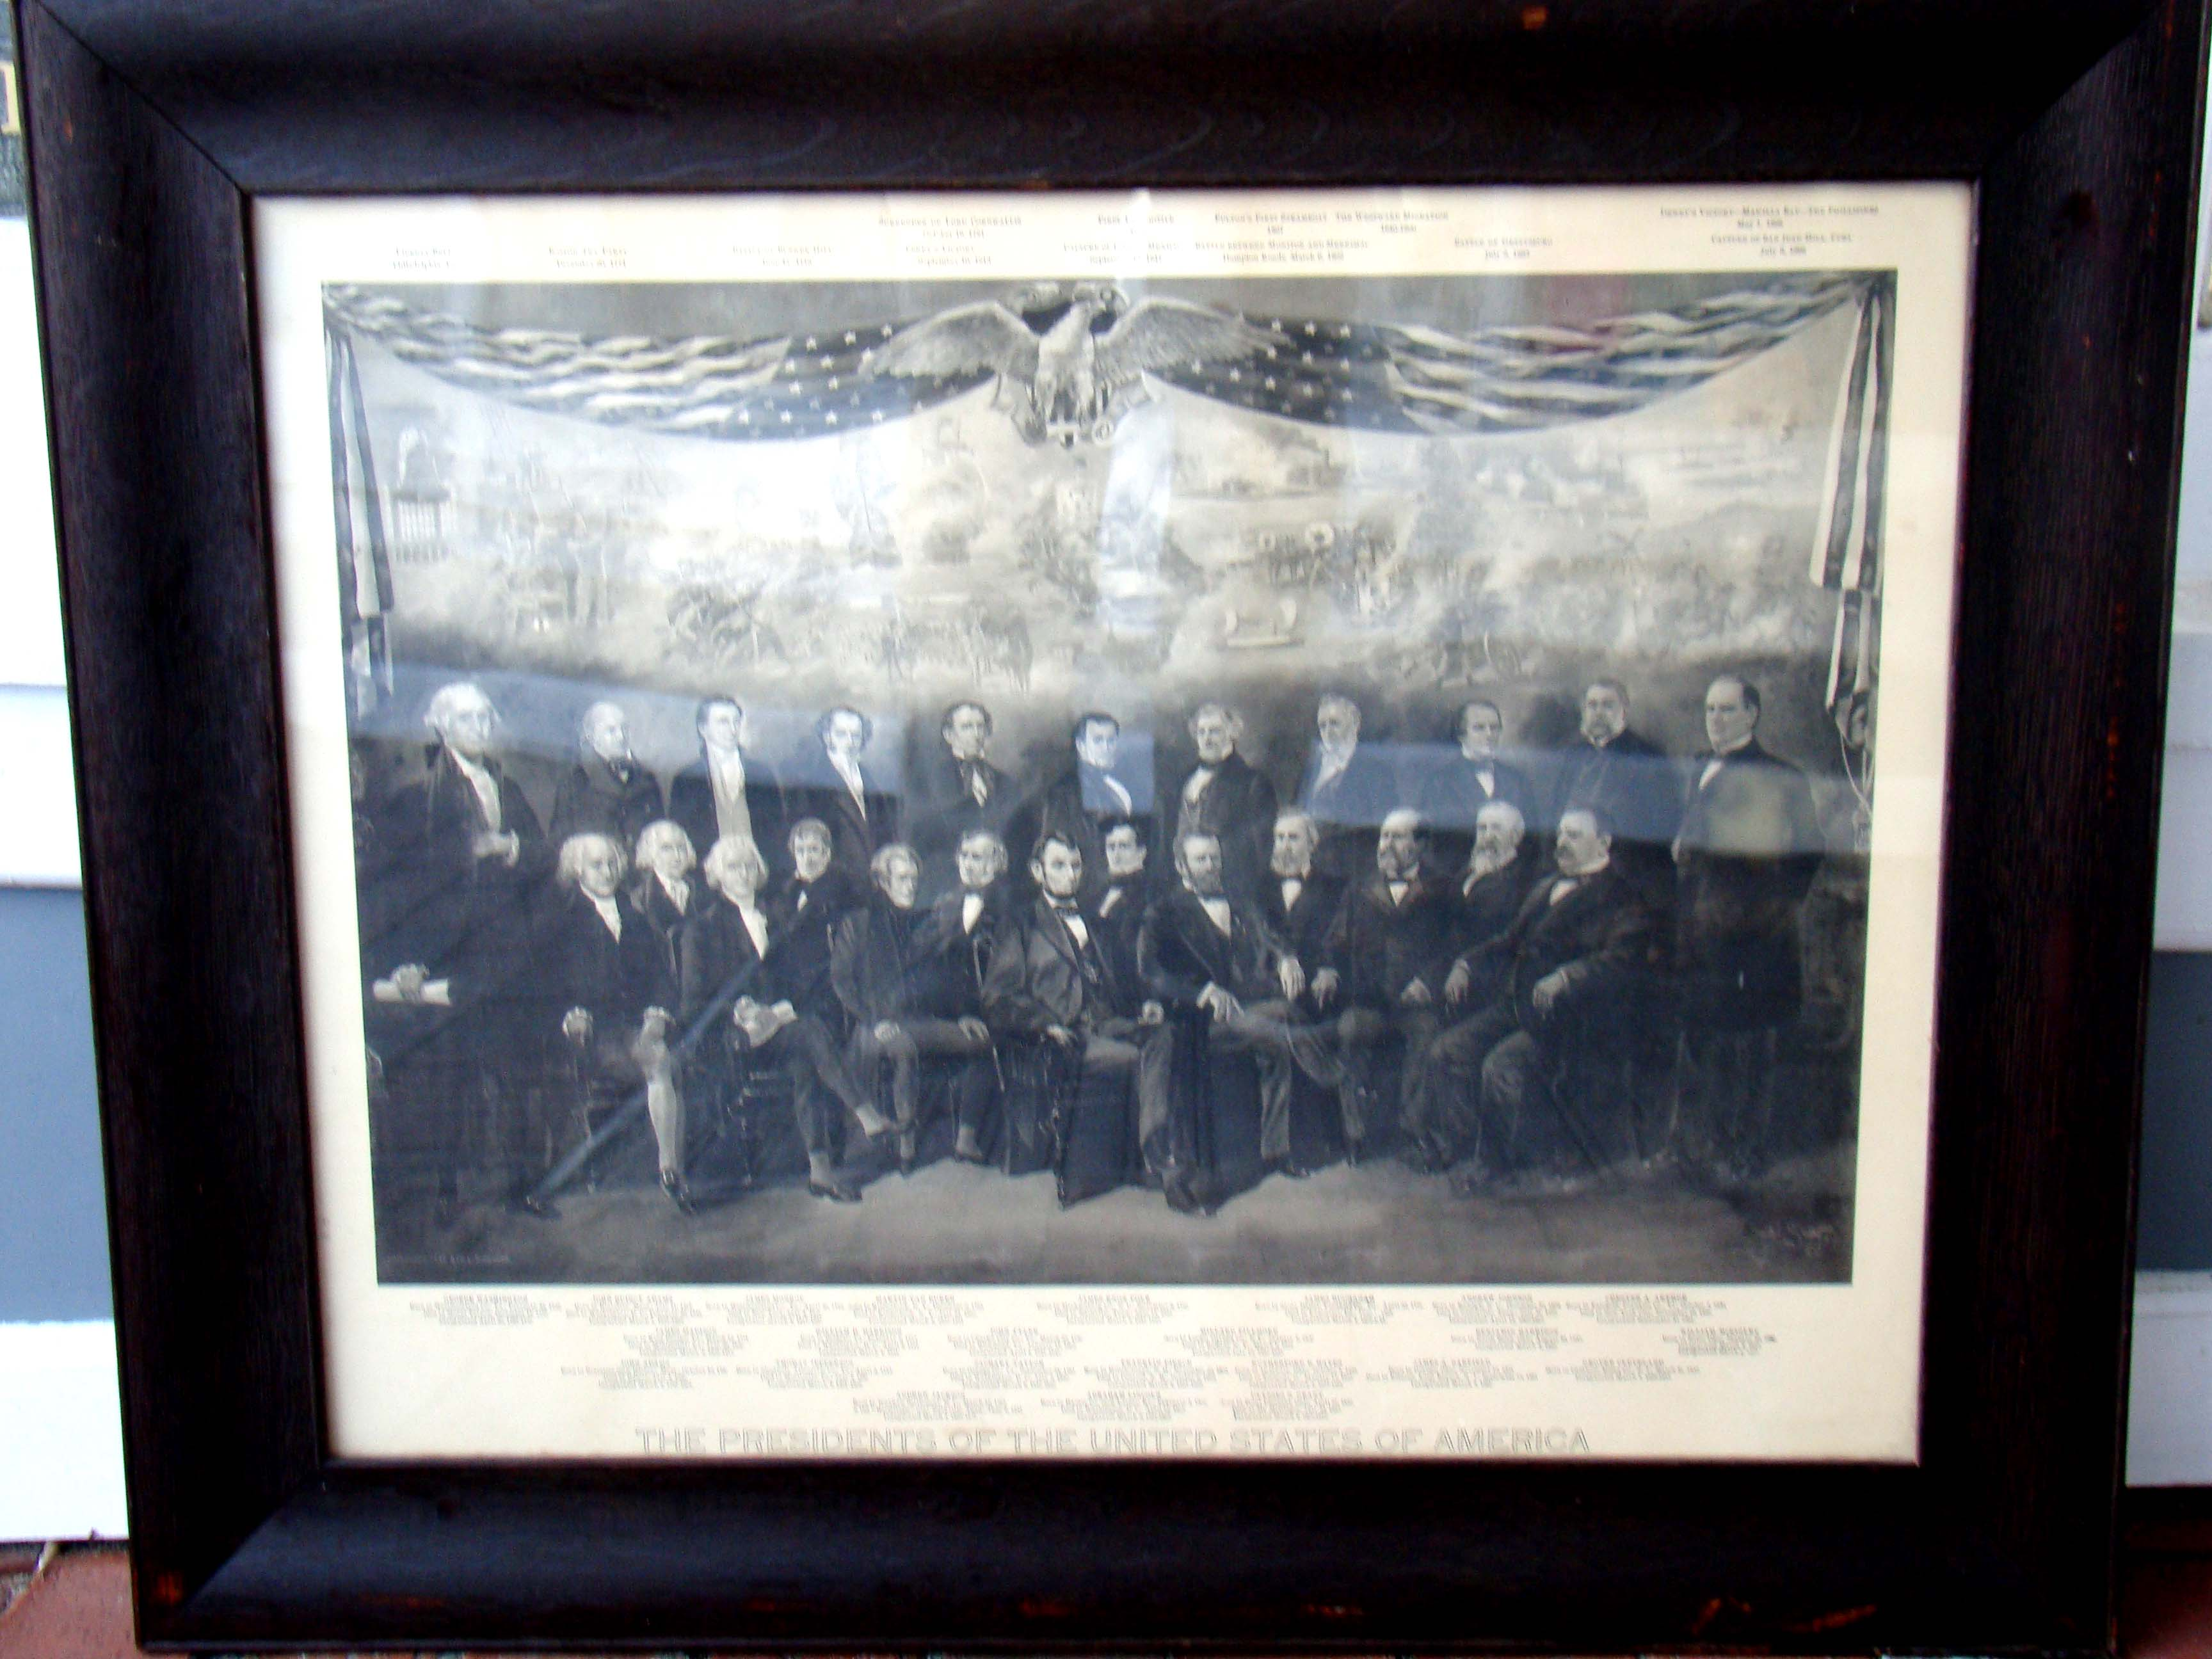 click to view larger image of A patriotic lithograph featuring the Presidents of the United States printed in 1901